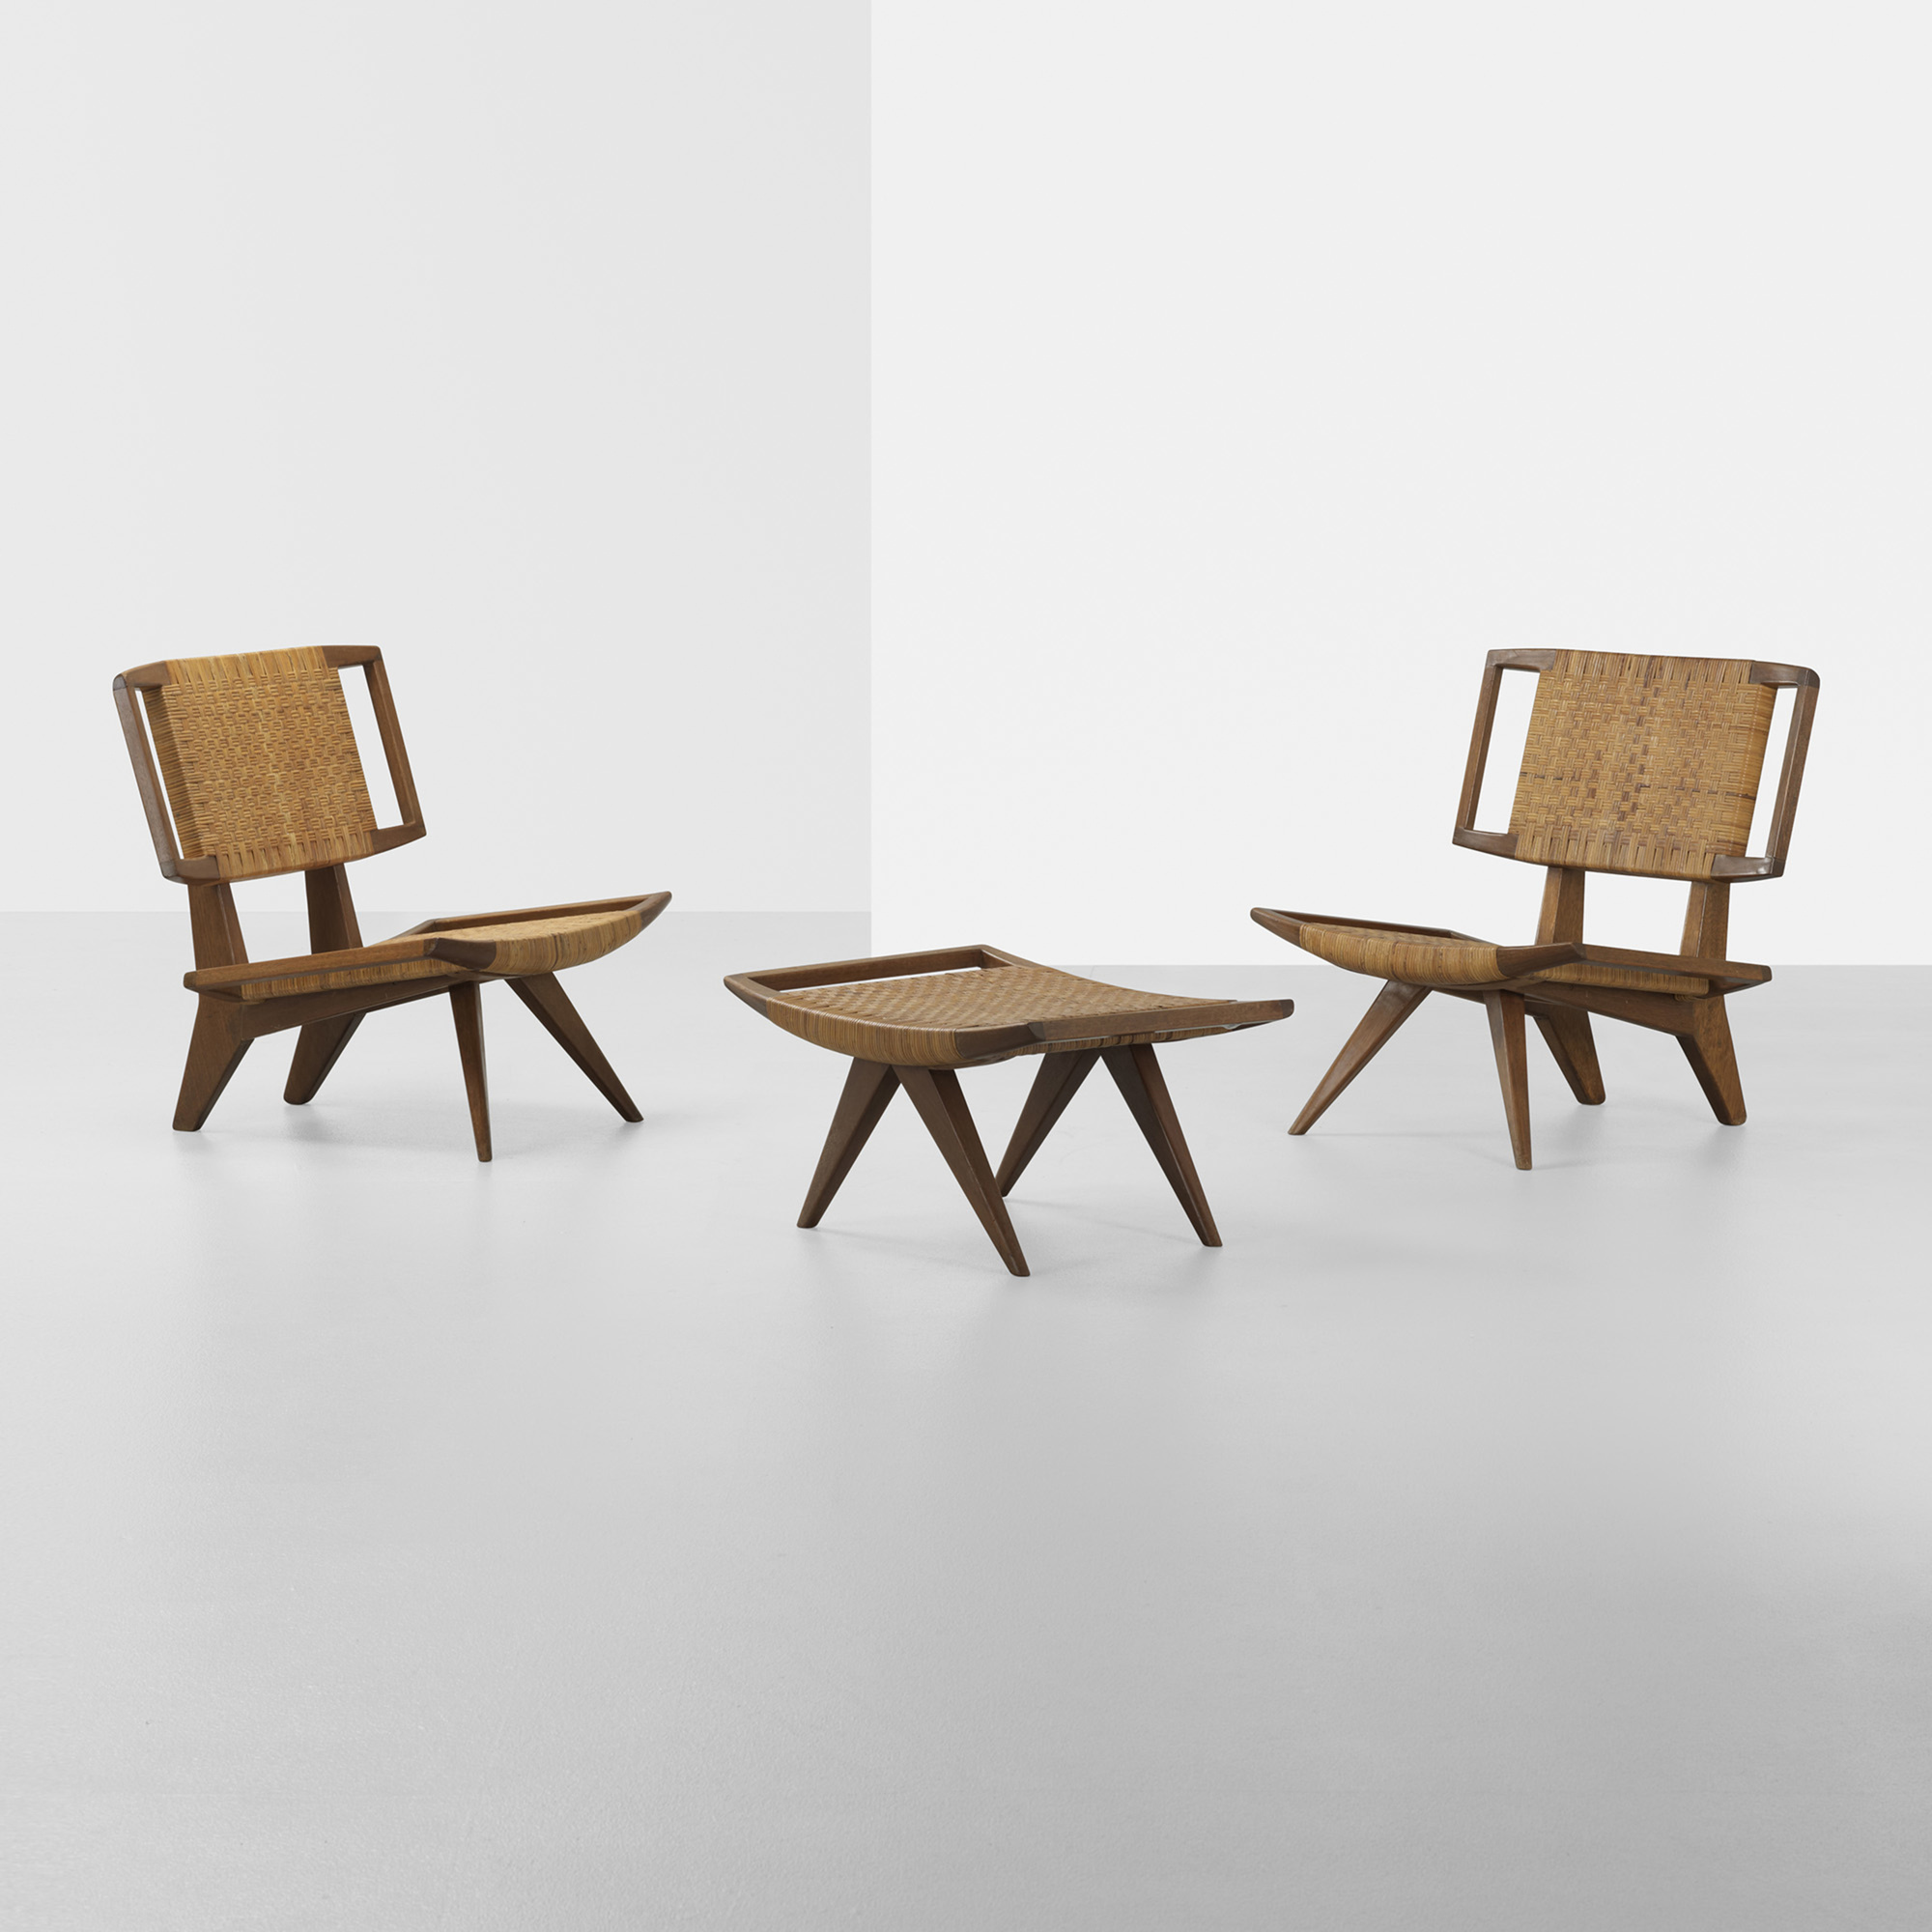 229: Paul Laszlo / pair of lounge chairs and ottoman (1 of 3)